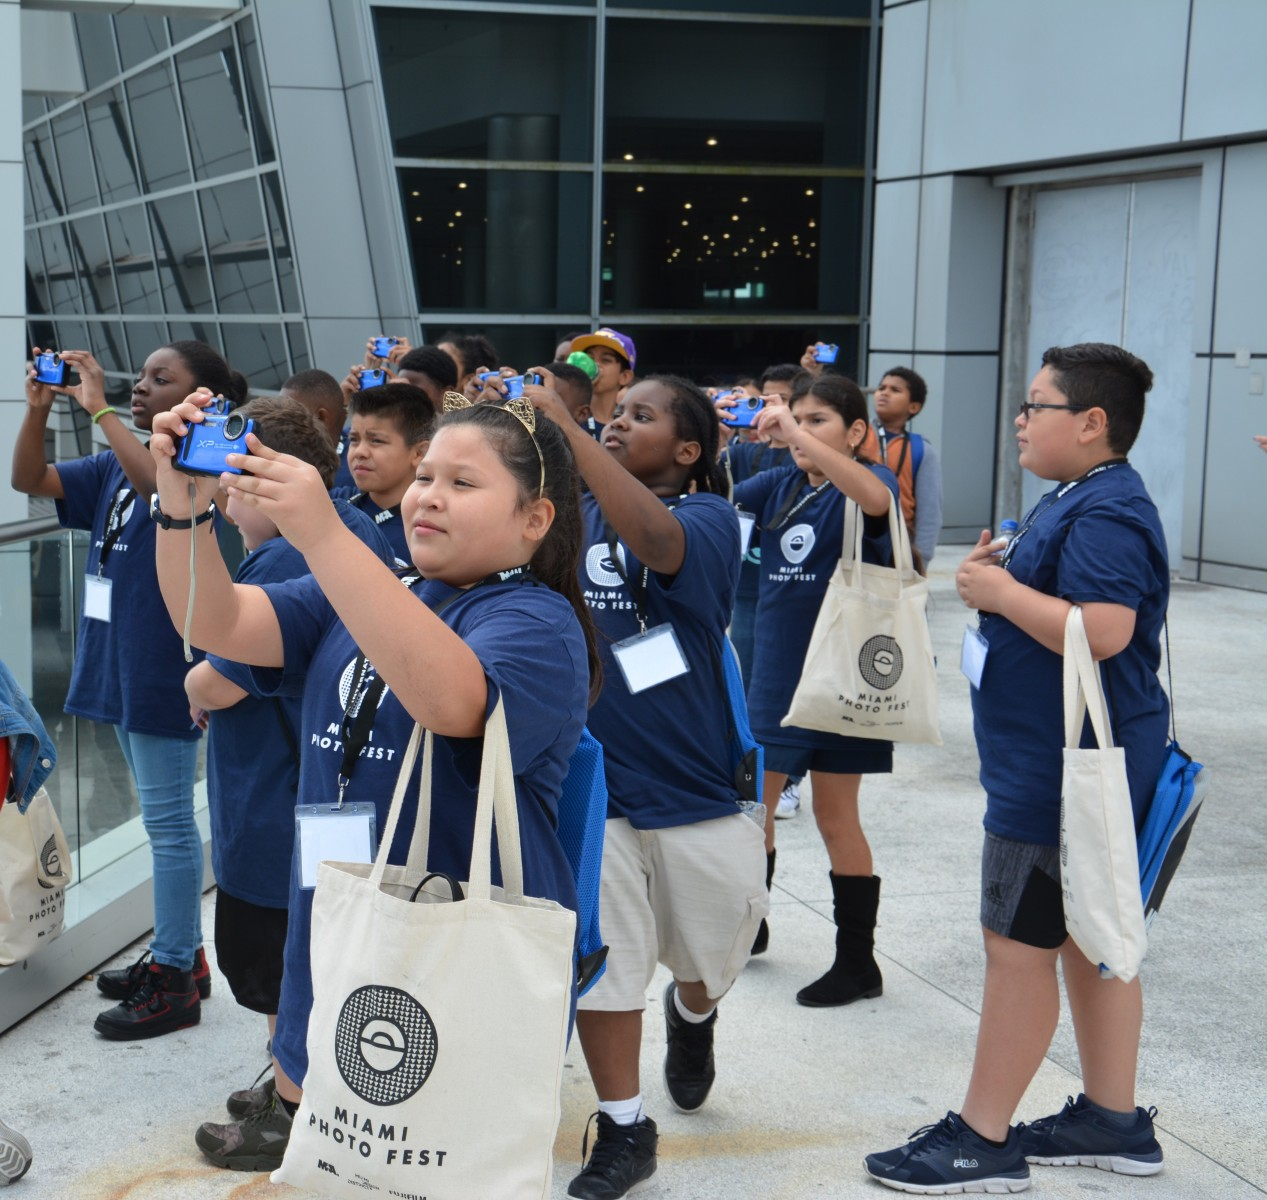 Debate Continues On Shooting Drills With Students: MIA, Miami Photo Fest Treat Elementary Students To Photo Shoot